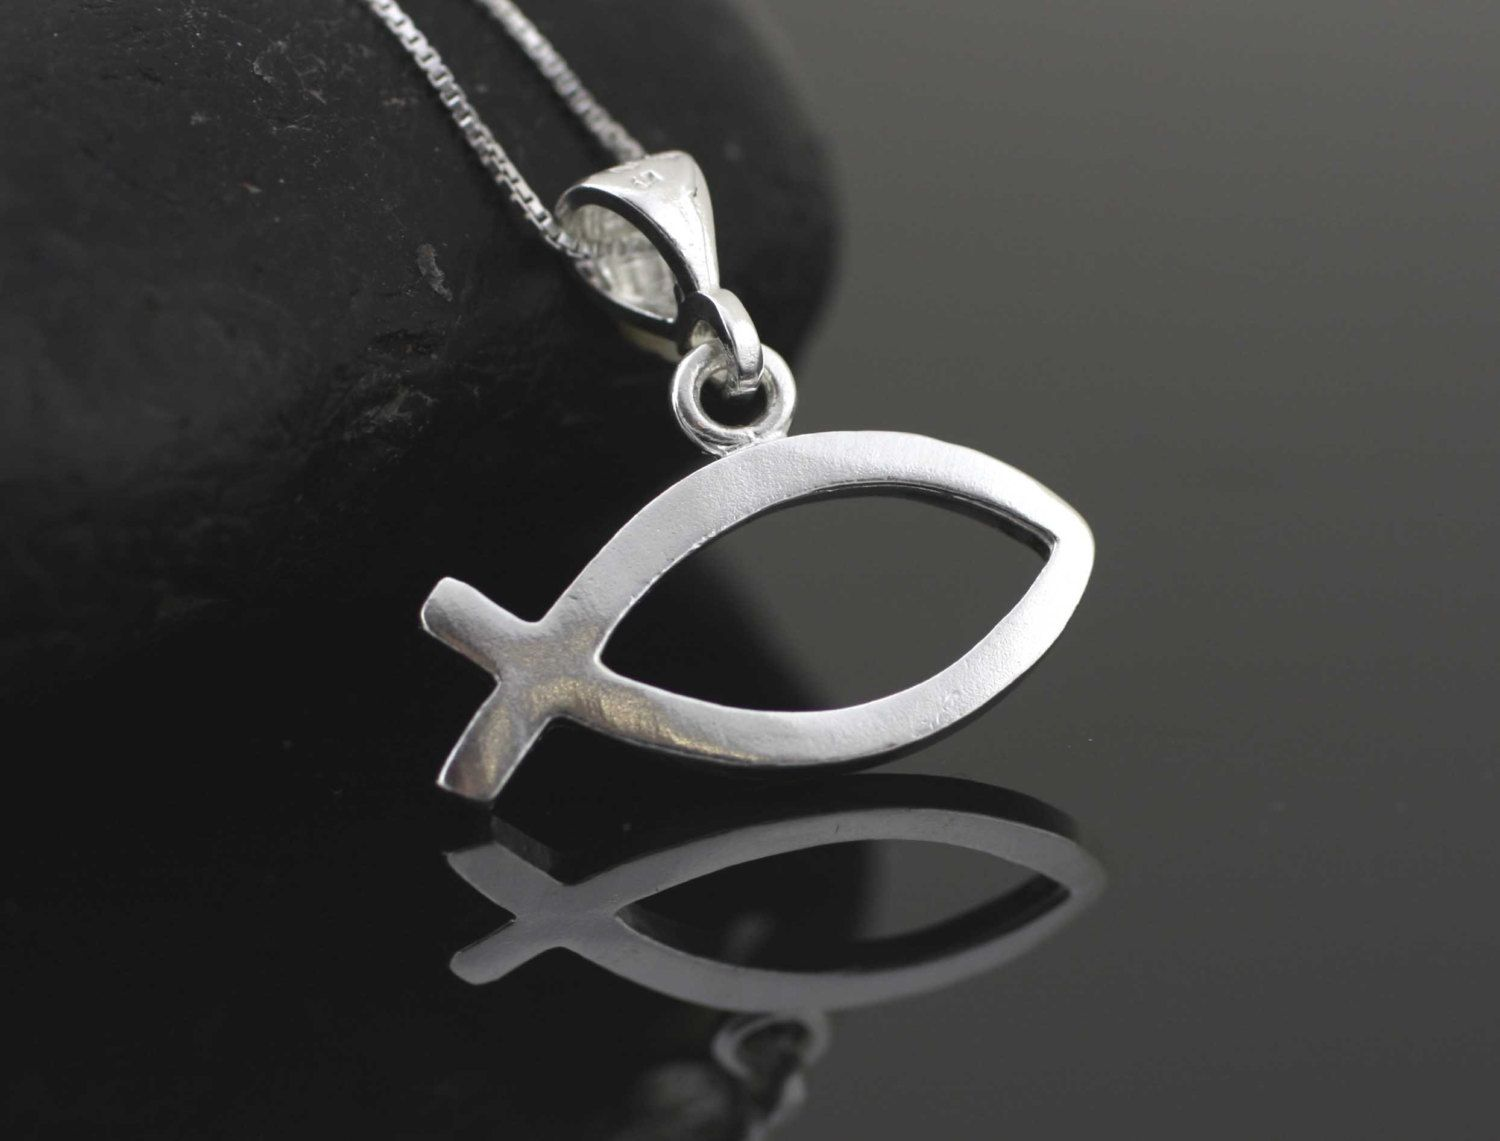 Silver christian fish necklace sterling silver ichthys sterling silver christian fish necklace sterling silver ichthys sterling silver jesus fish christian fish biocorpaavc Choice Image